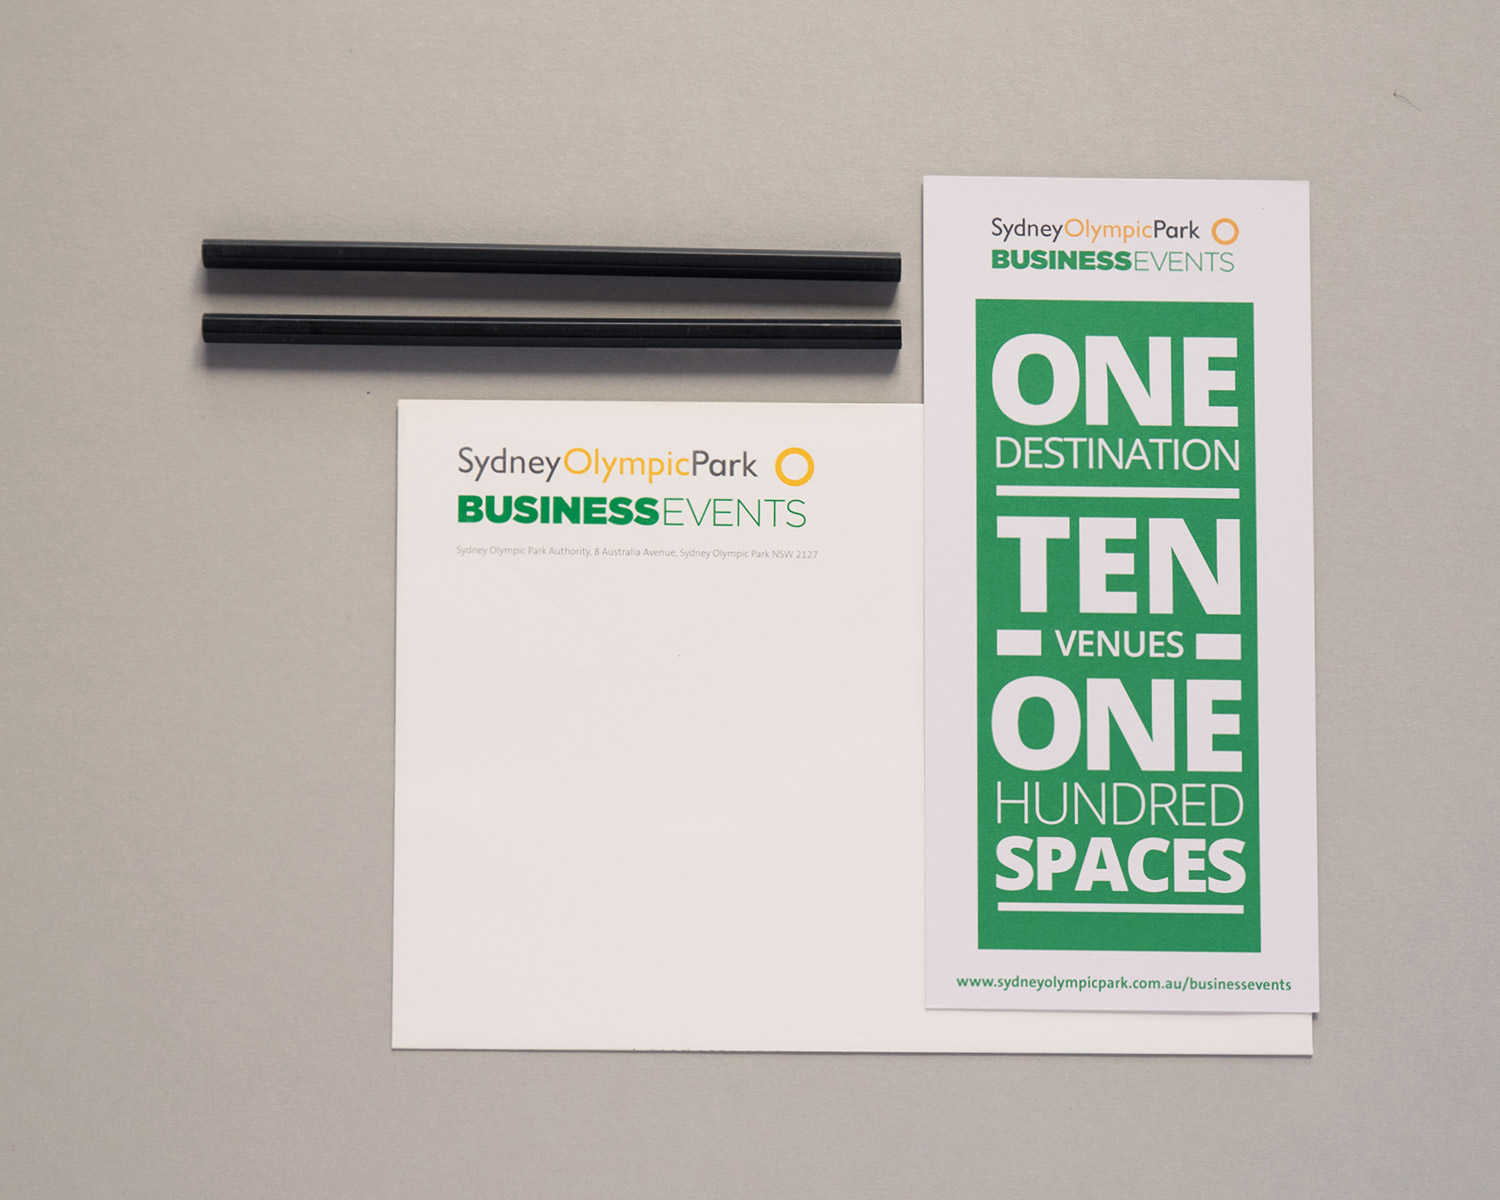 bussiness-events-stationary-1500-1200.jpg